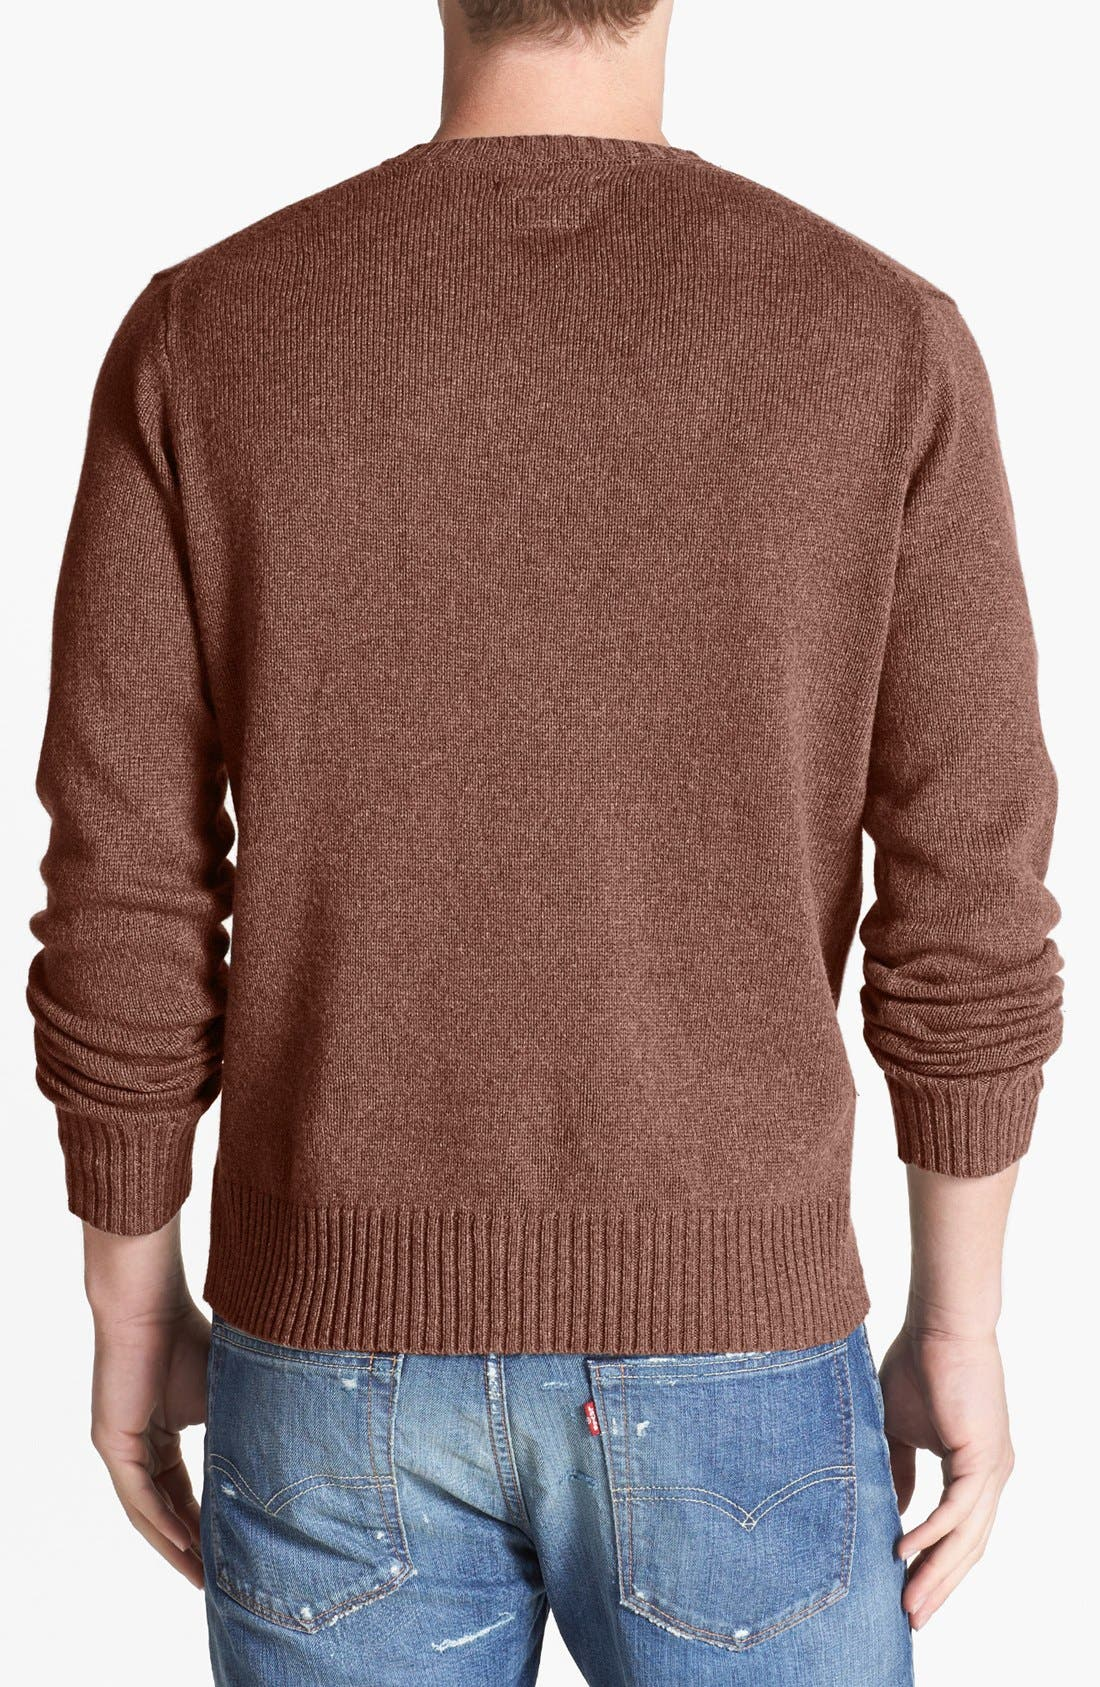 Alternate Image 2  - RVCA 'Briza' Crewneck Sweater